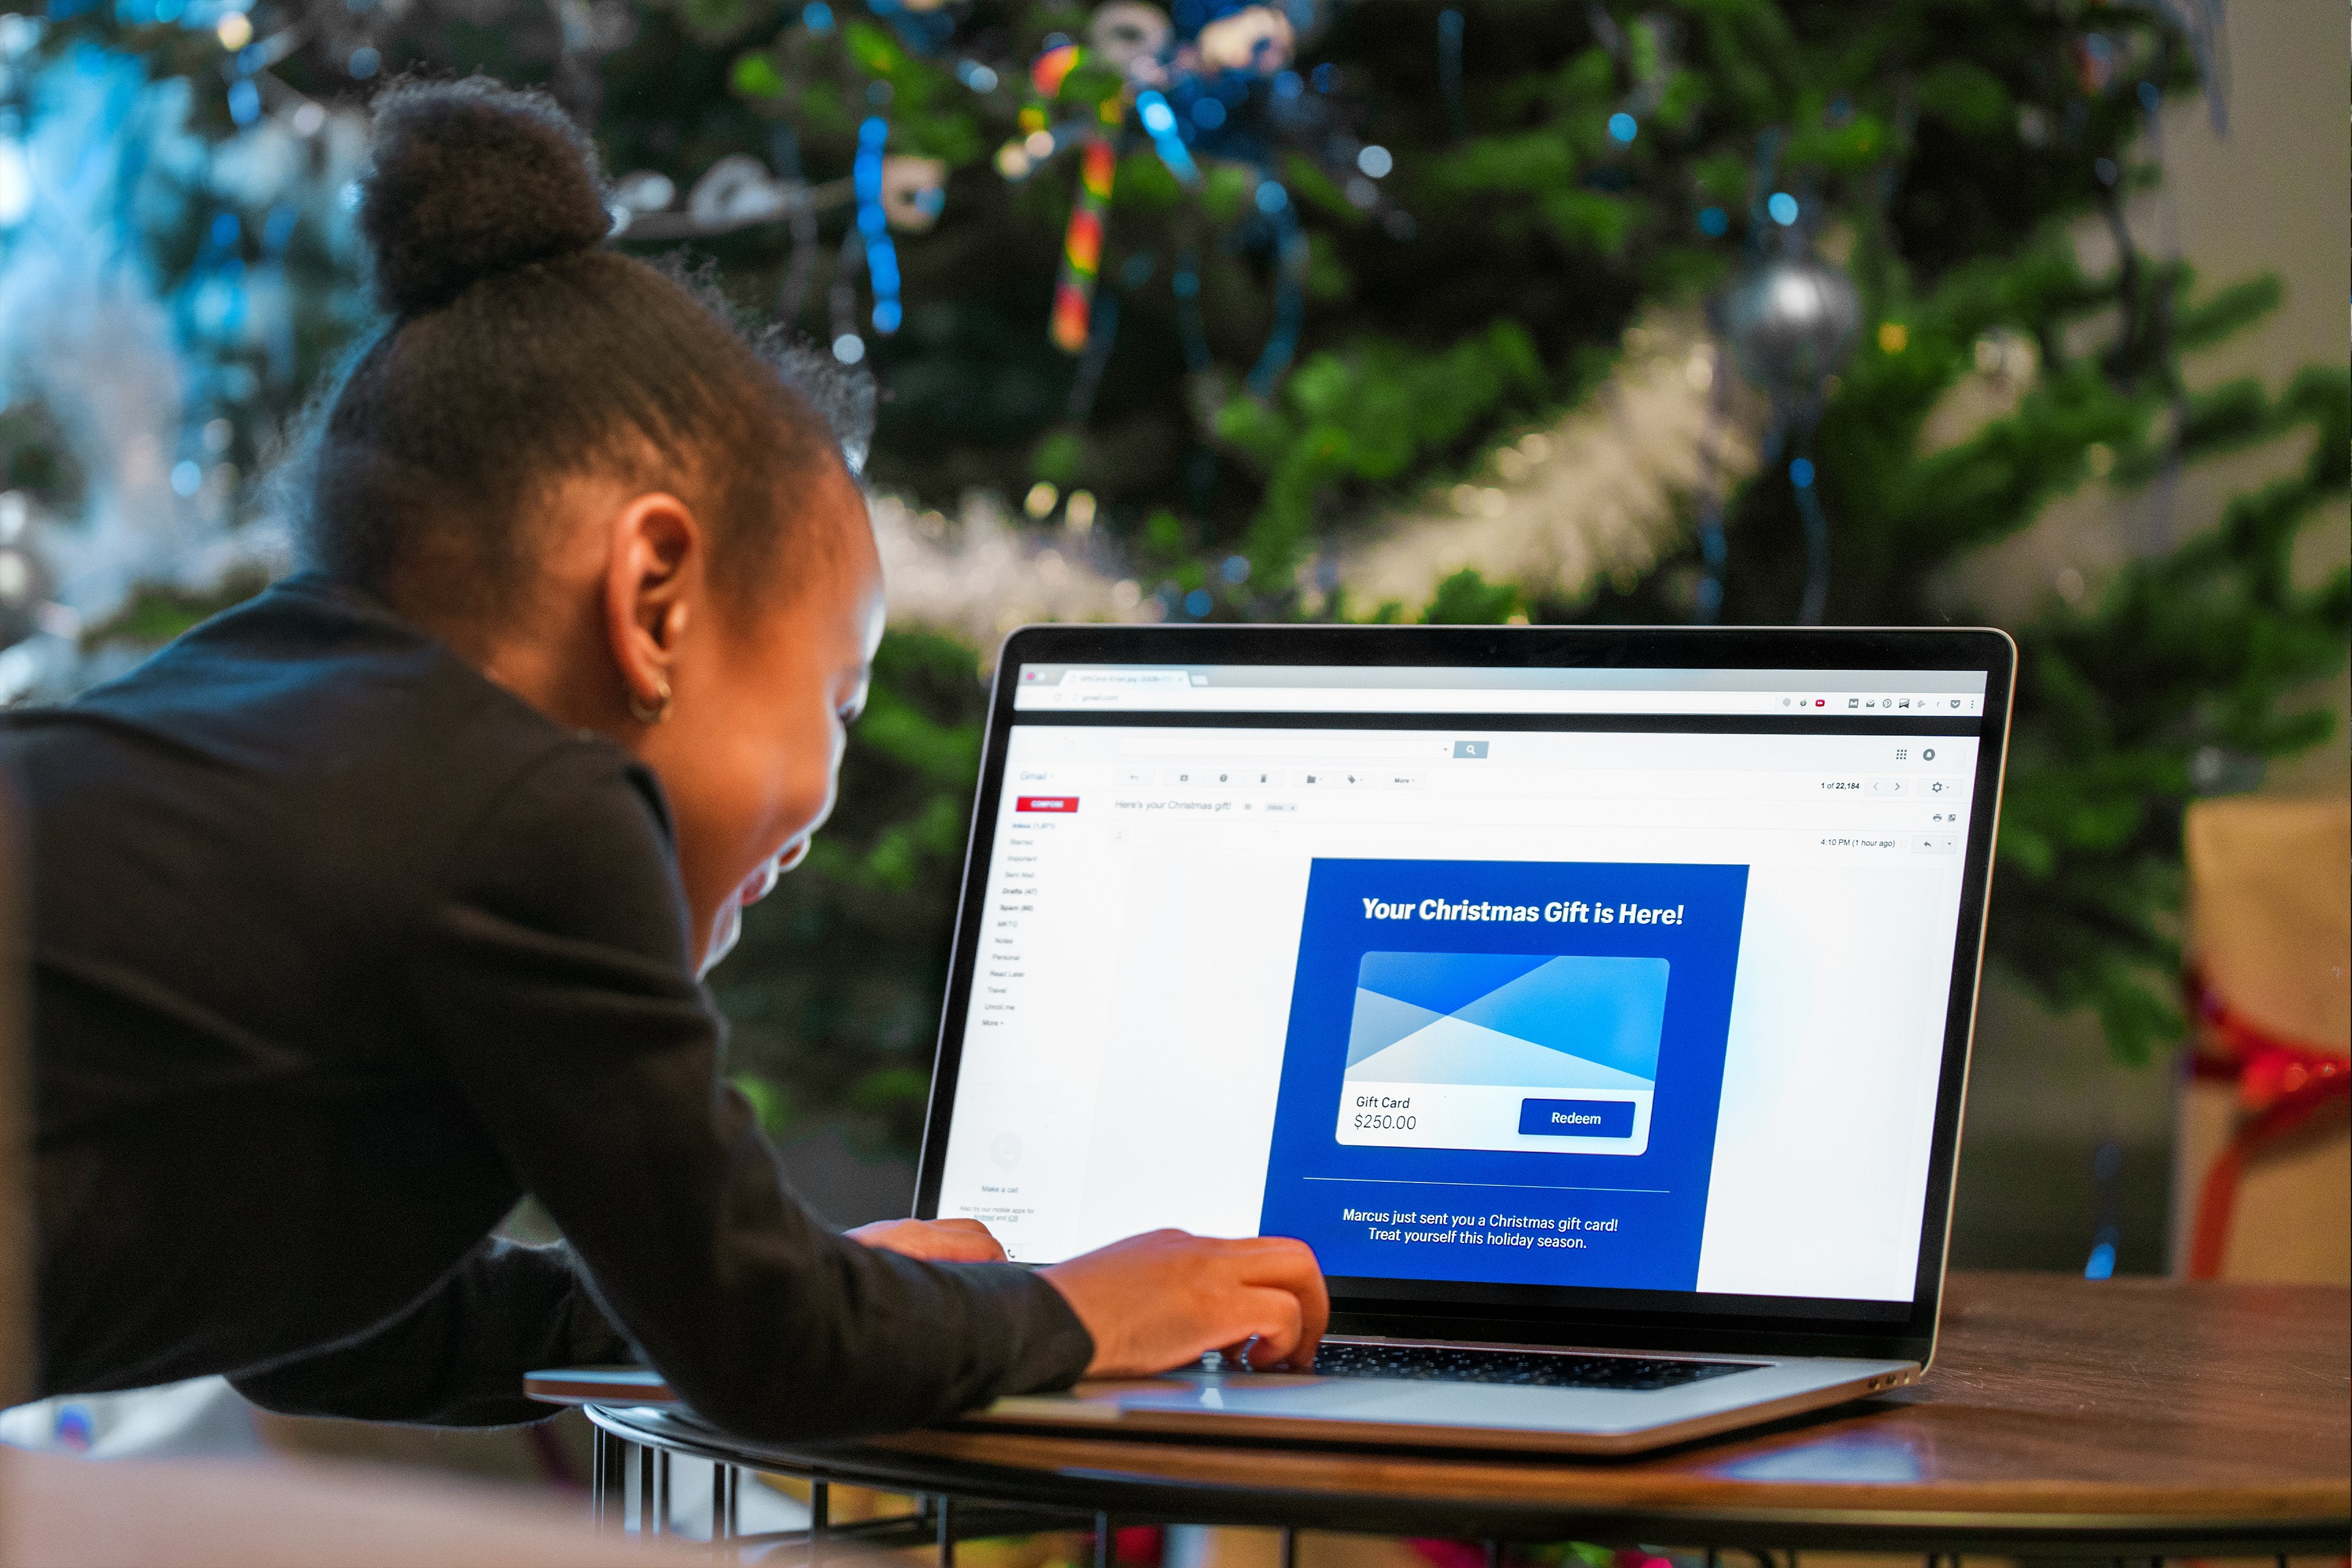 A child redeems a digital gift card online in front of the Christmas tree